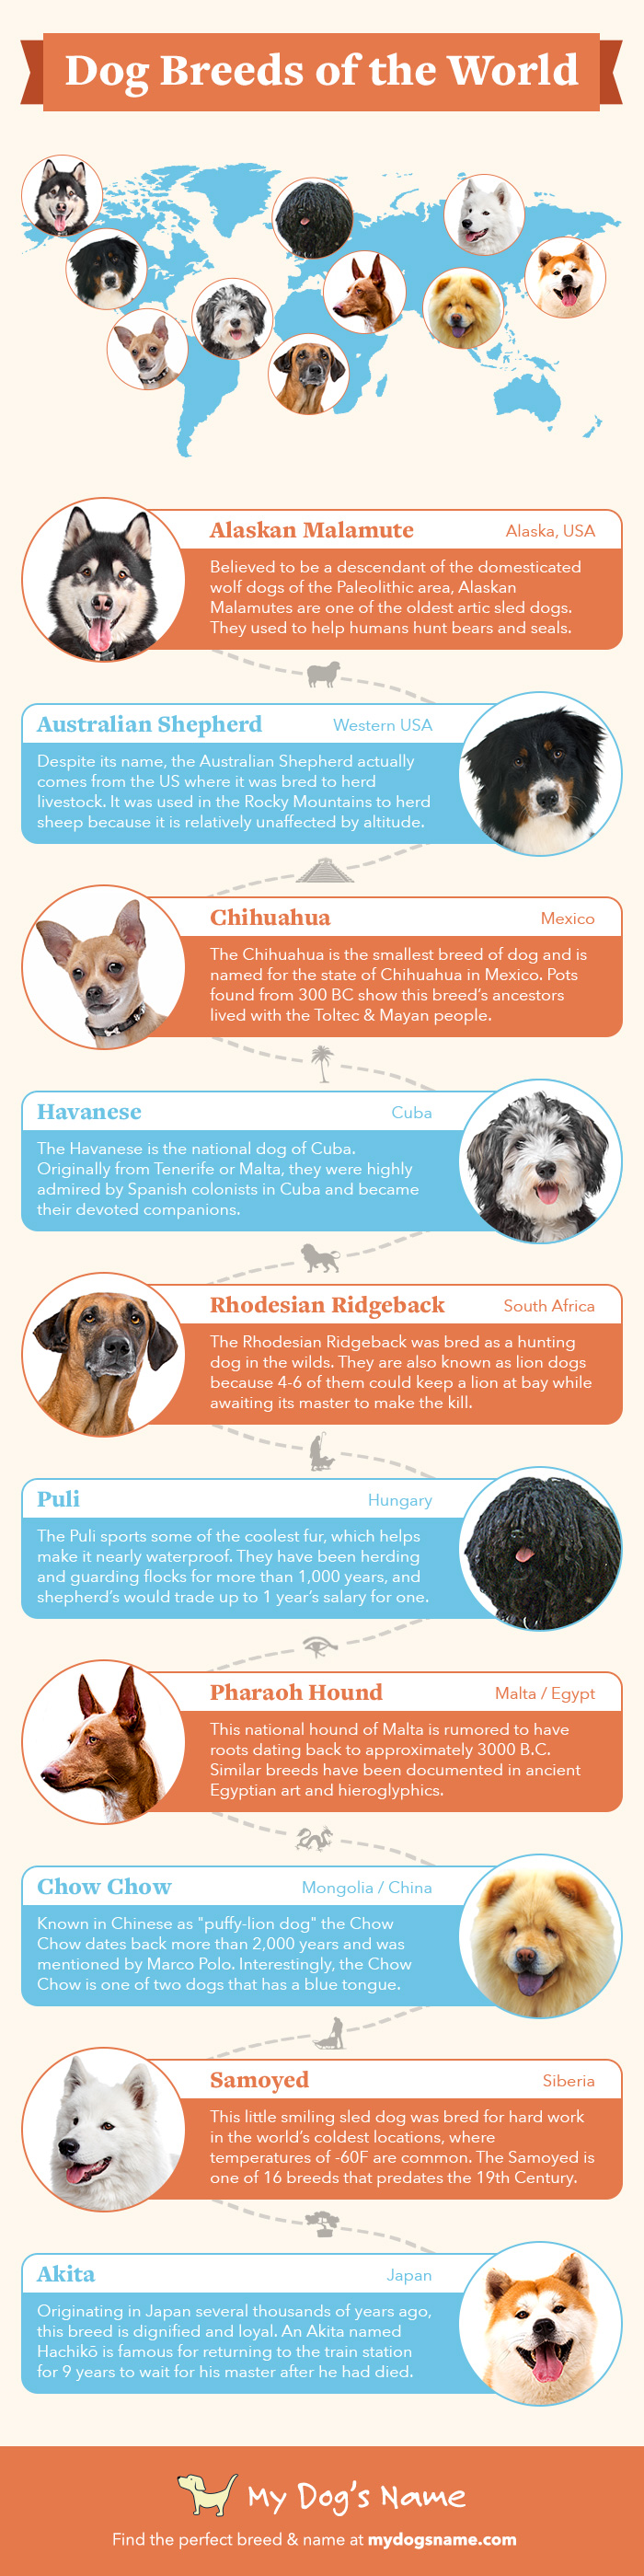 dog-breeds-of-the-world